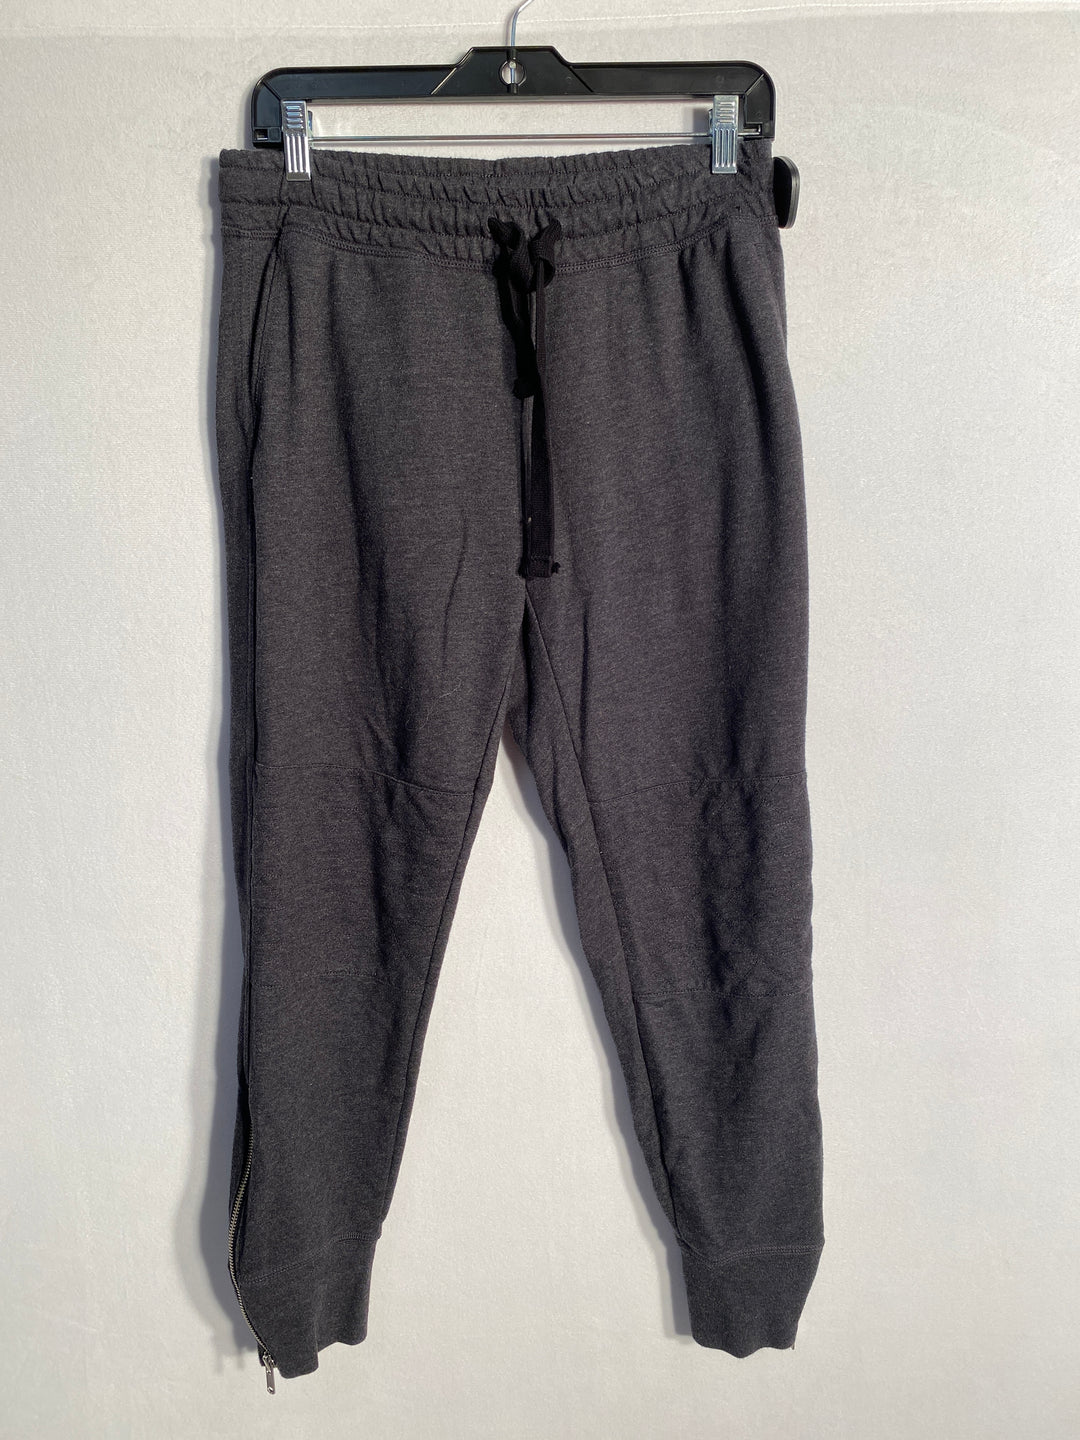 Primary Photo - BRAND: GAP<BR>STYLE: ATHLETIC PANTS<BR>COLOR: SILVER<BR>SIZE: S<BR>SKU: 313-31332-5334